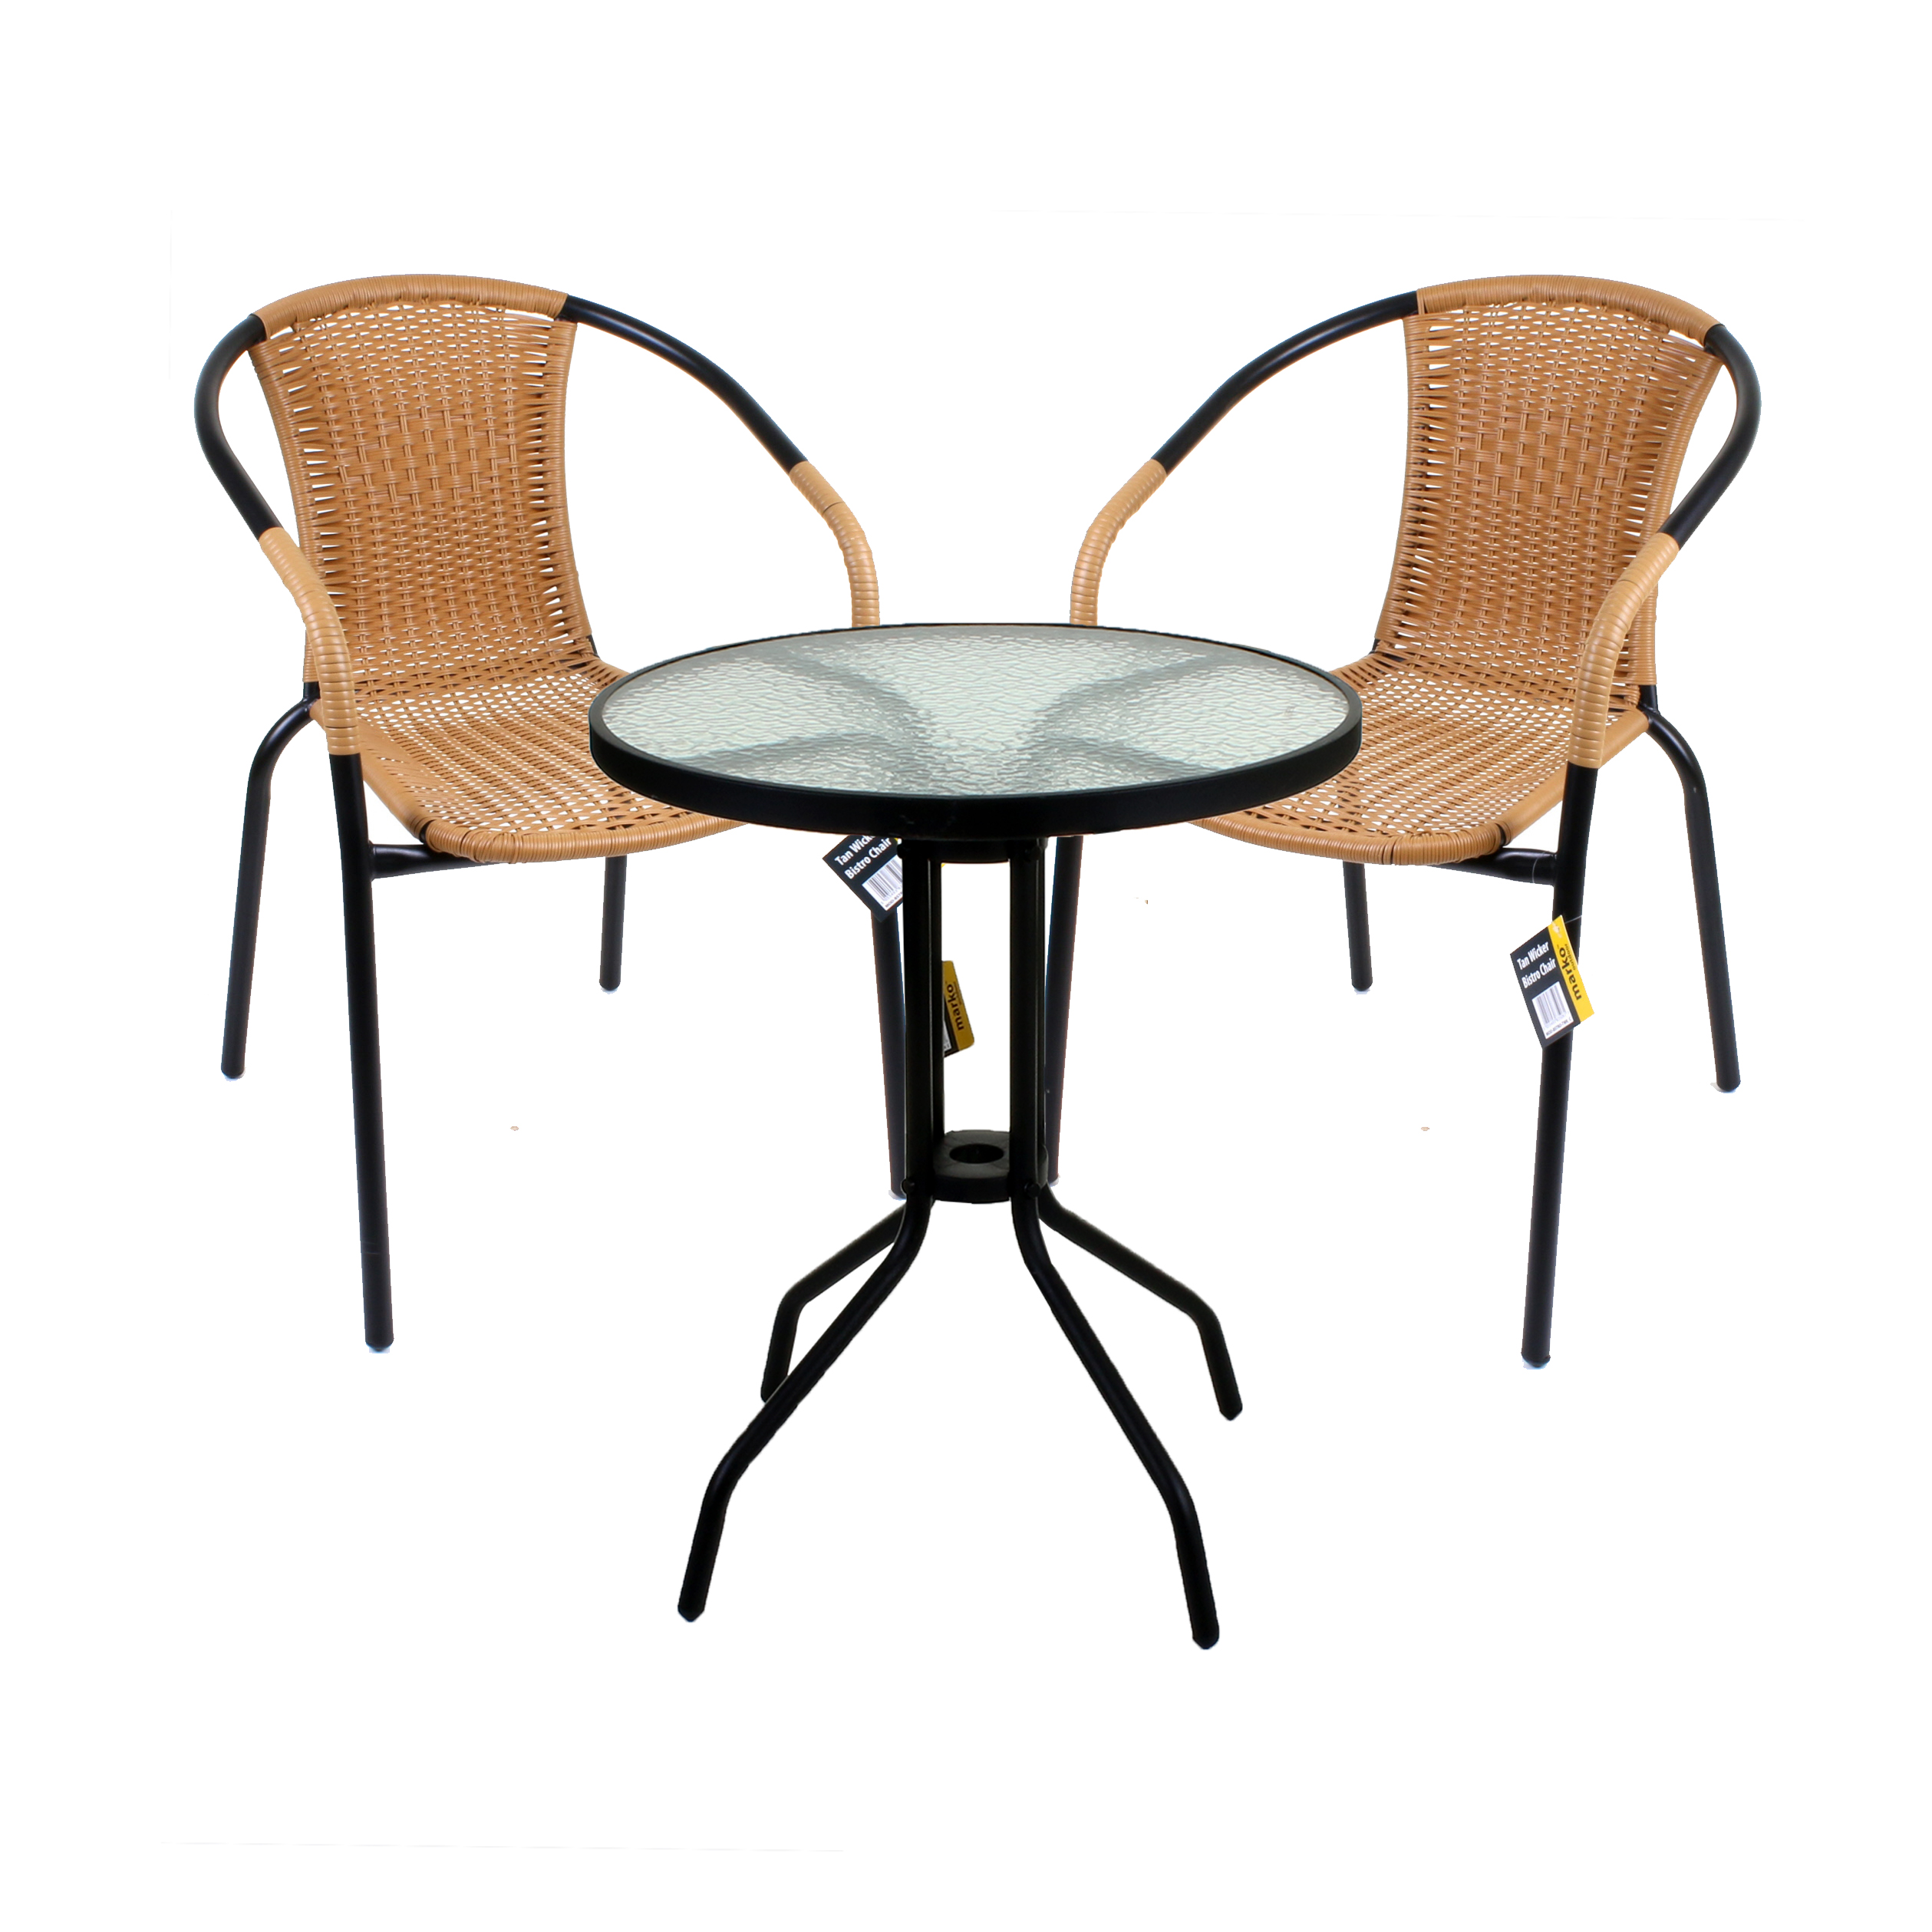 3 piece bistro set garden patio tan wicker rattan outdoor furniture table chairs ebay. Black Bedroom Furniture Sets. Home Design Ideas